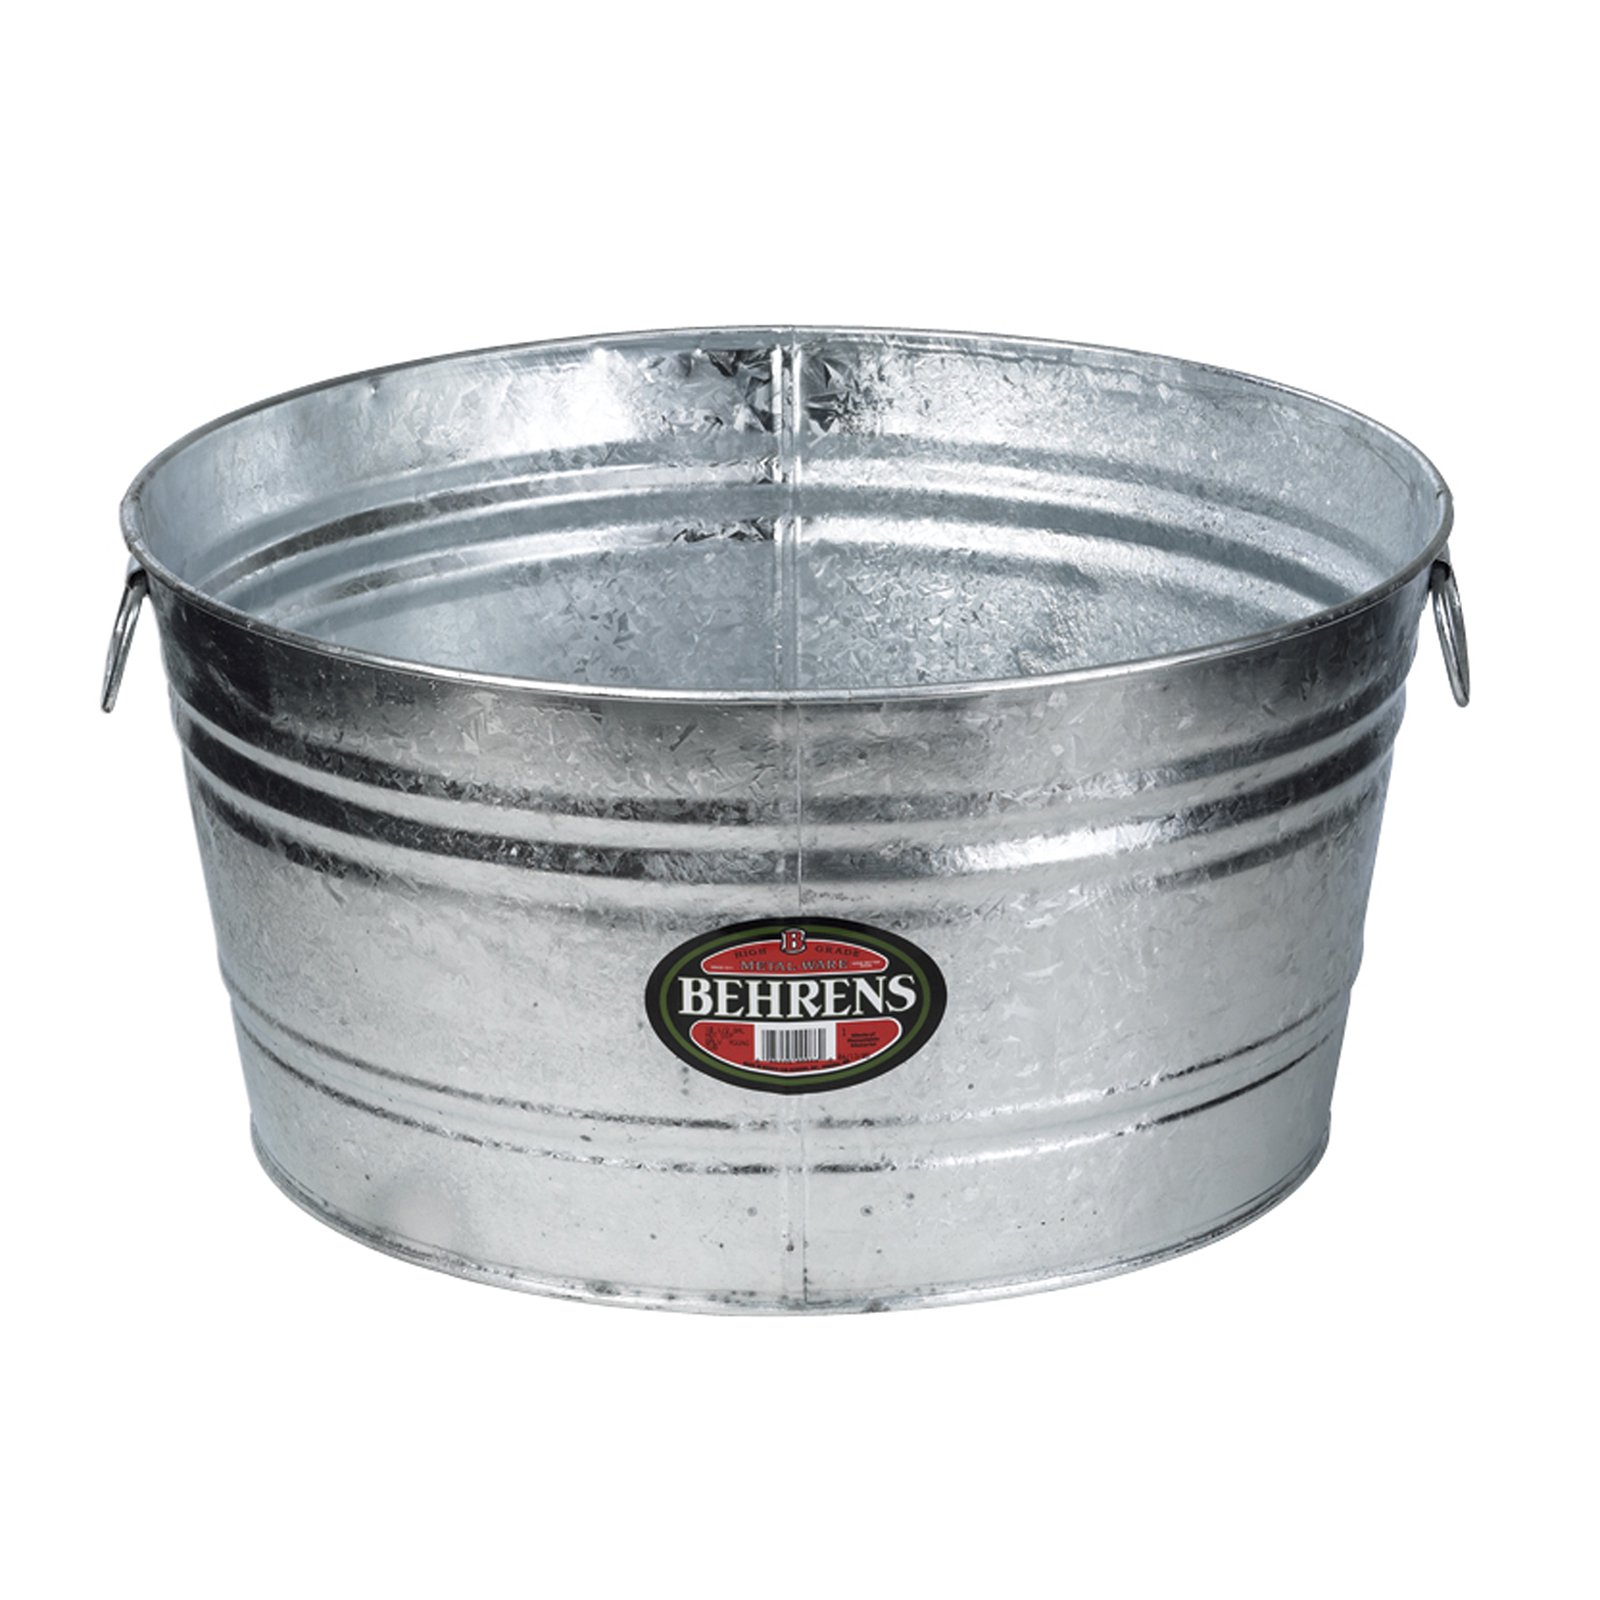 Behrens Hot Dipped Steel Round Beverage Tub